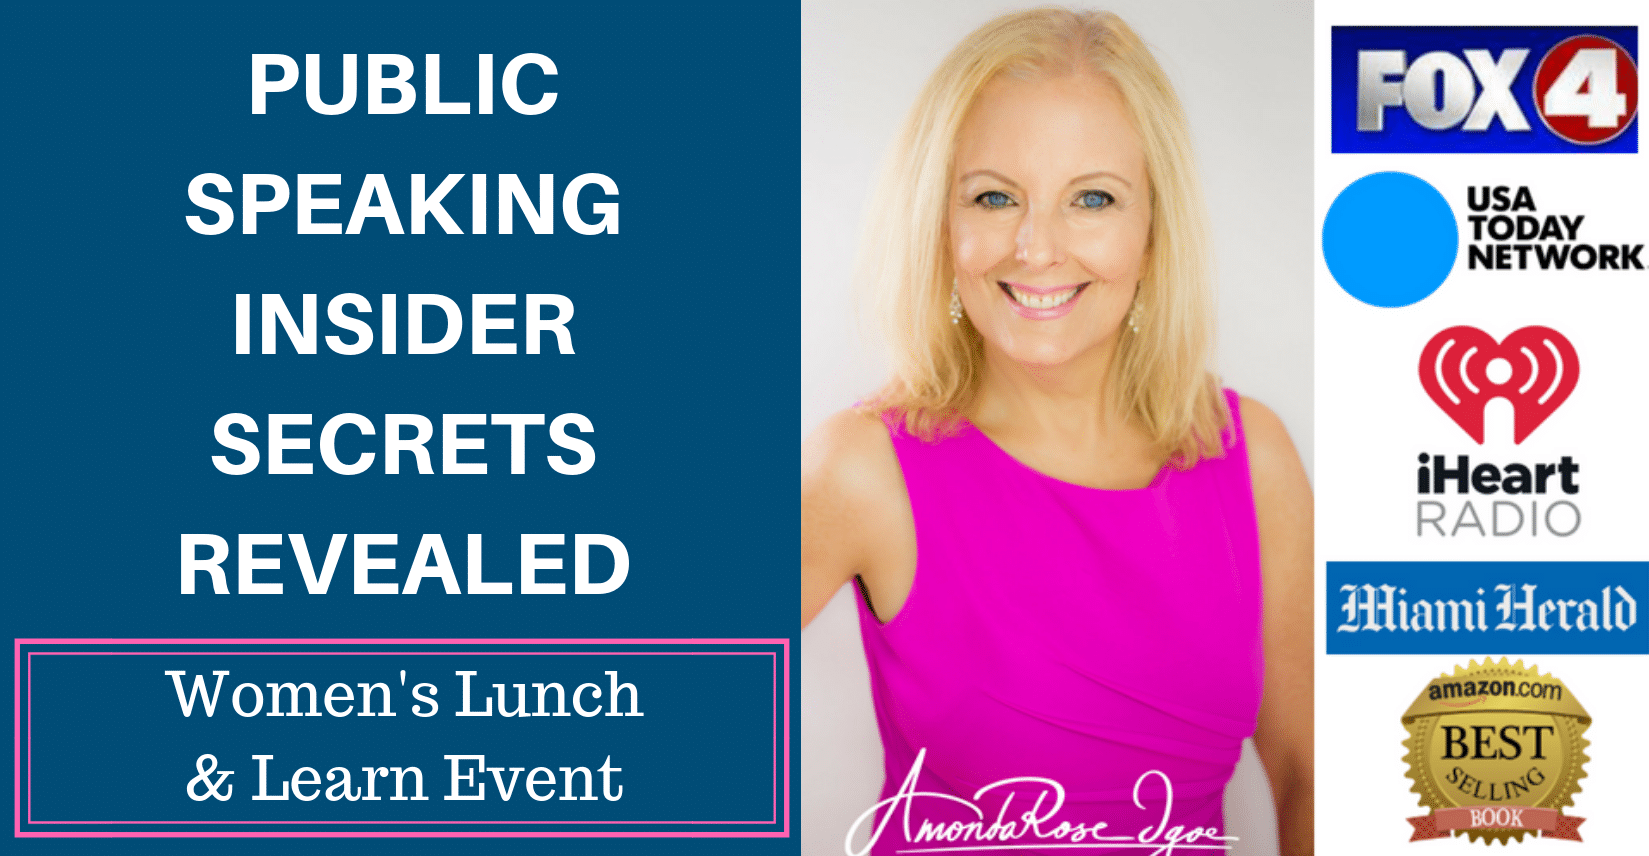 Public Speaking Insider Secrets Revealed: Women's Lunch and Learn Event